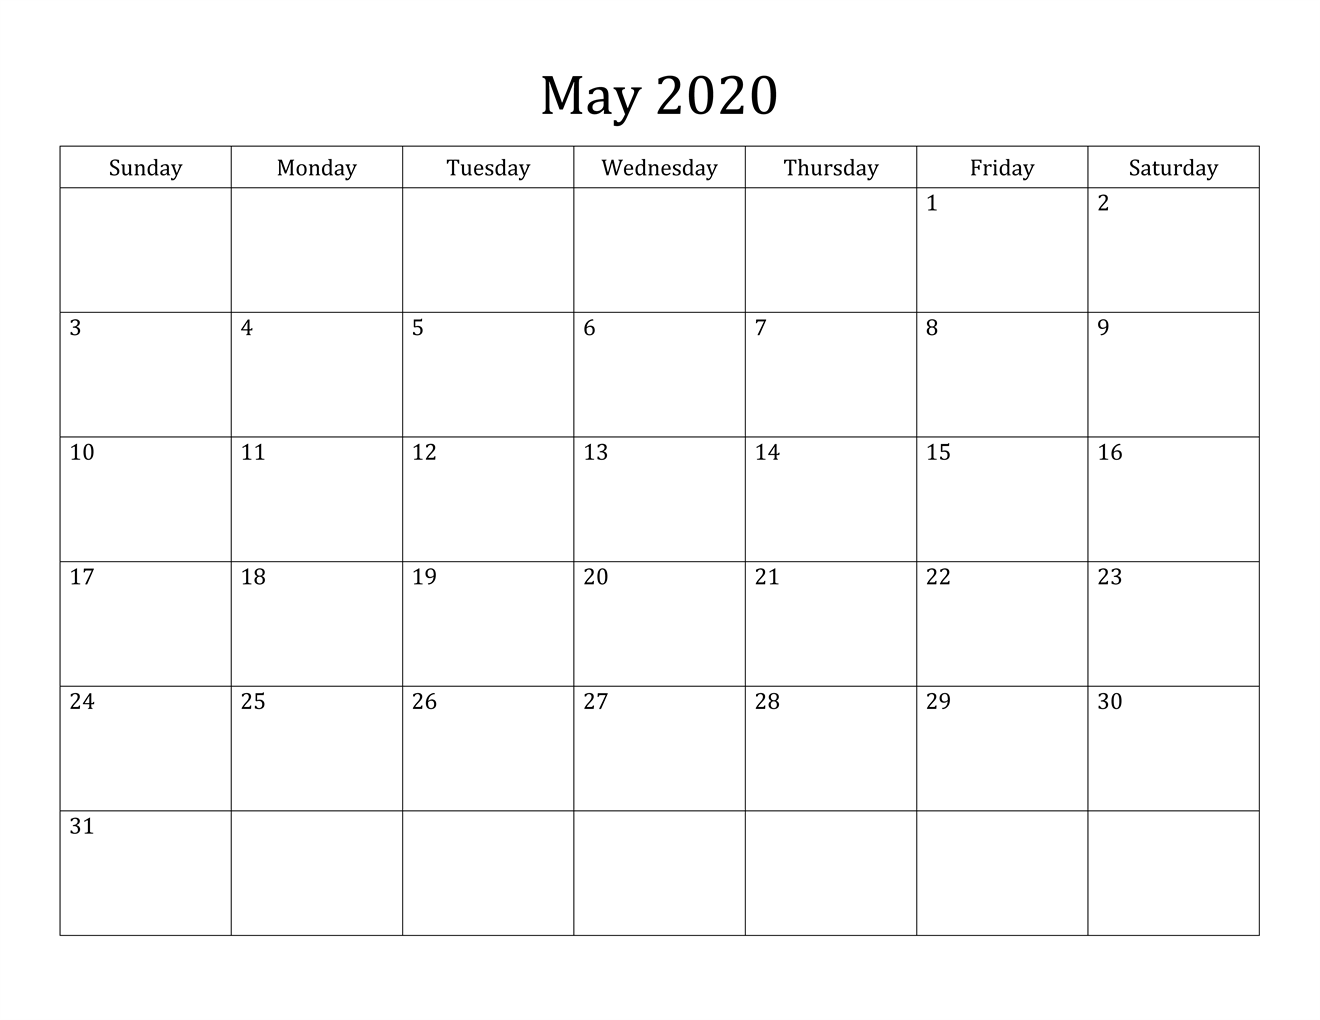 May 2020 calendar daily template